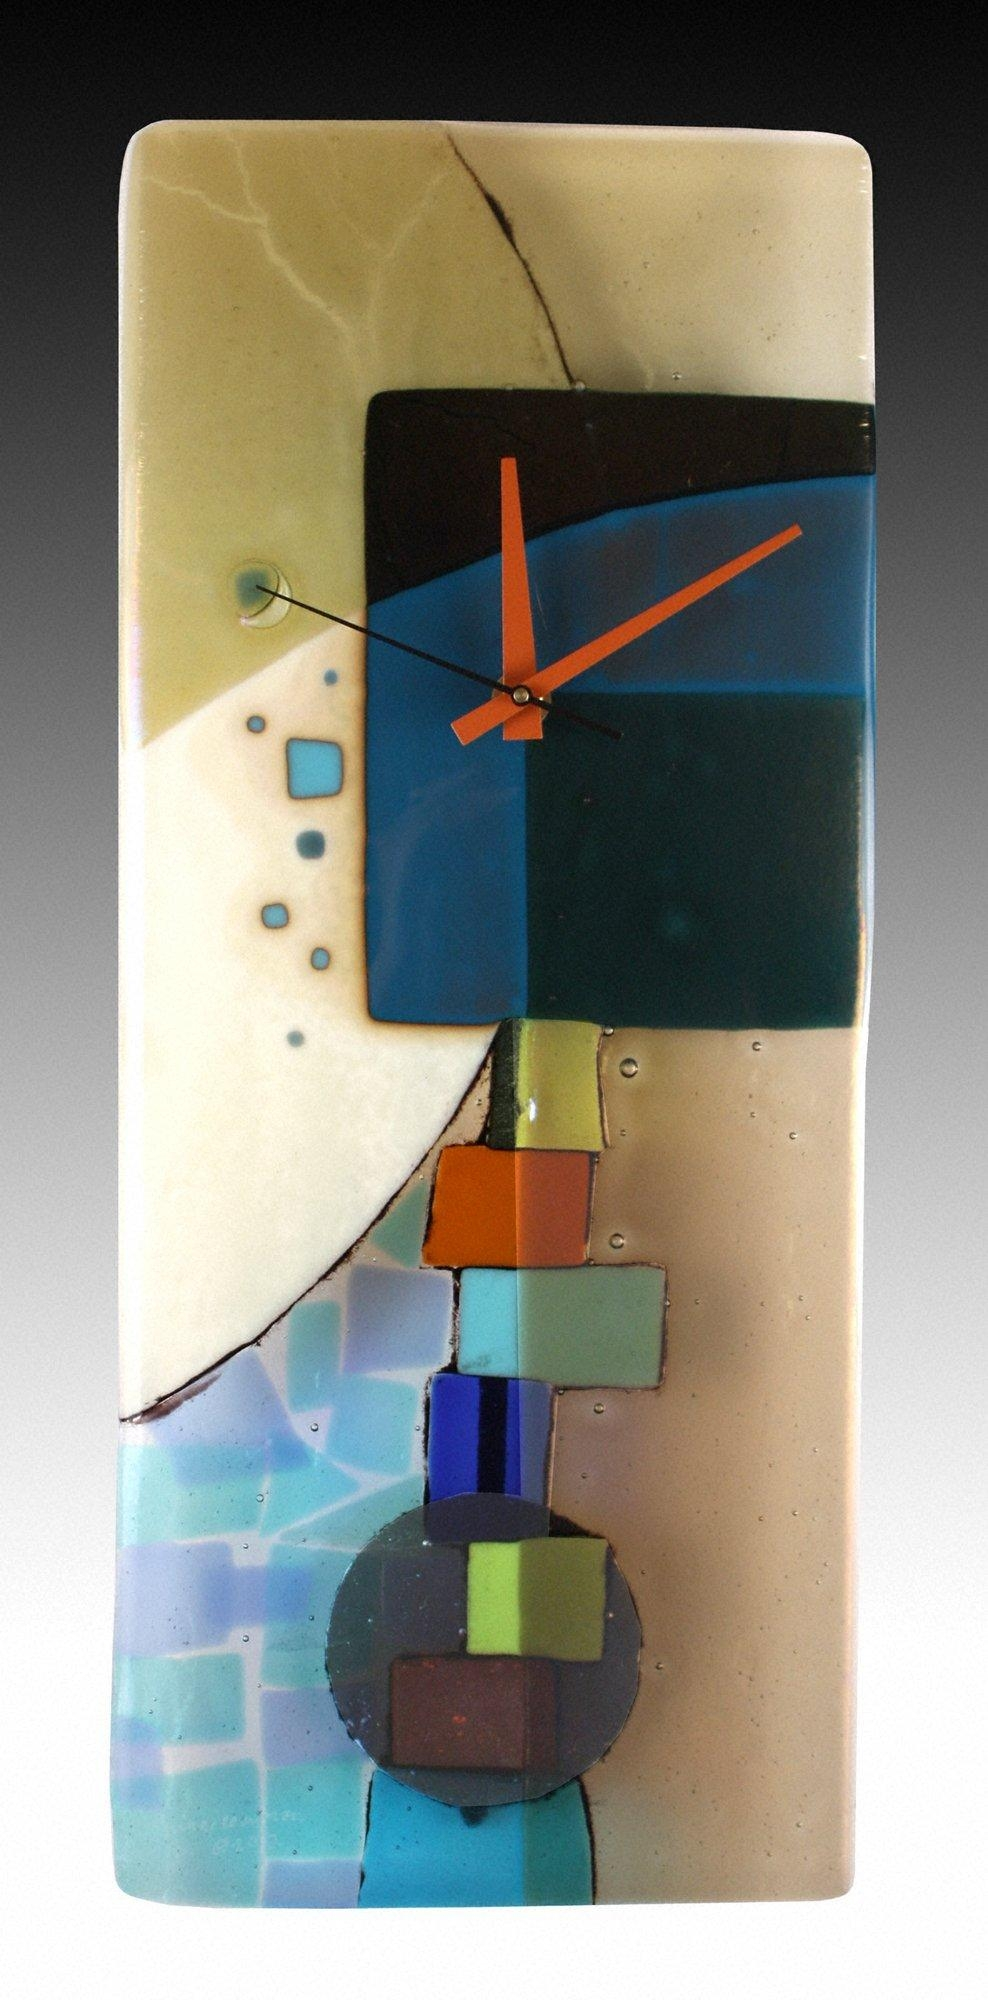 Glass Wall Artnorth American Artists | Artful Home In Fused Glass Wall Artwork (Image 18 of 20)